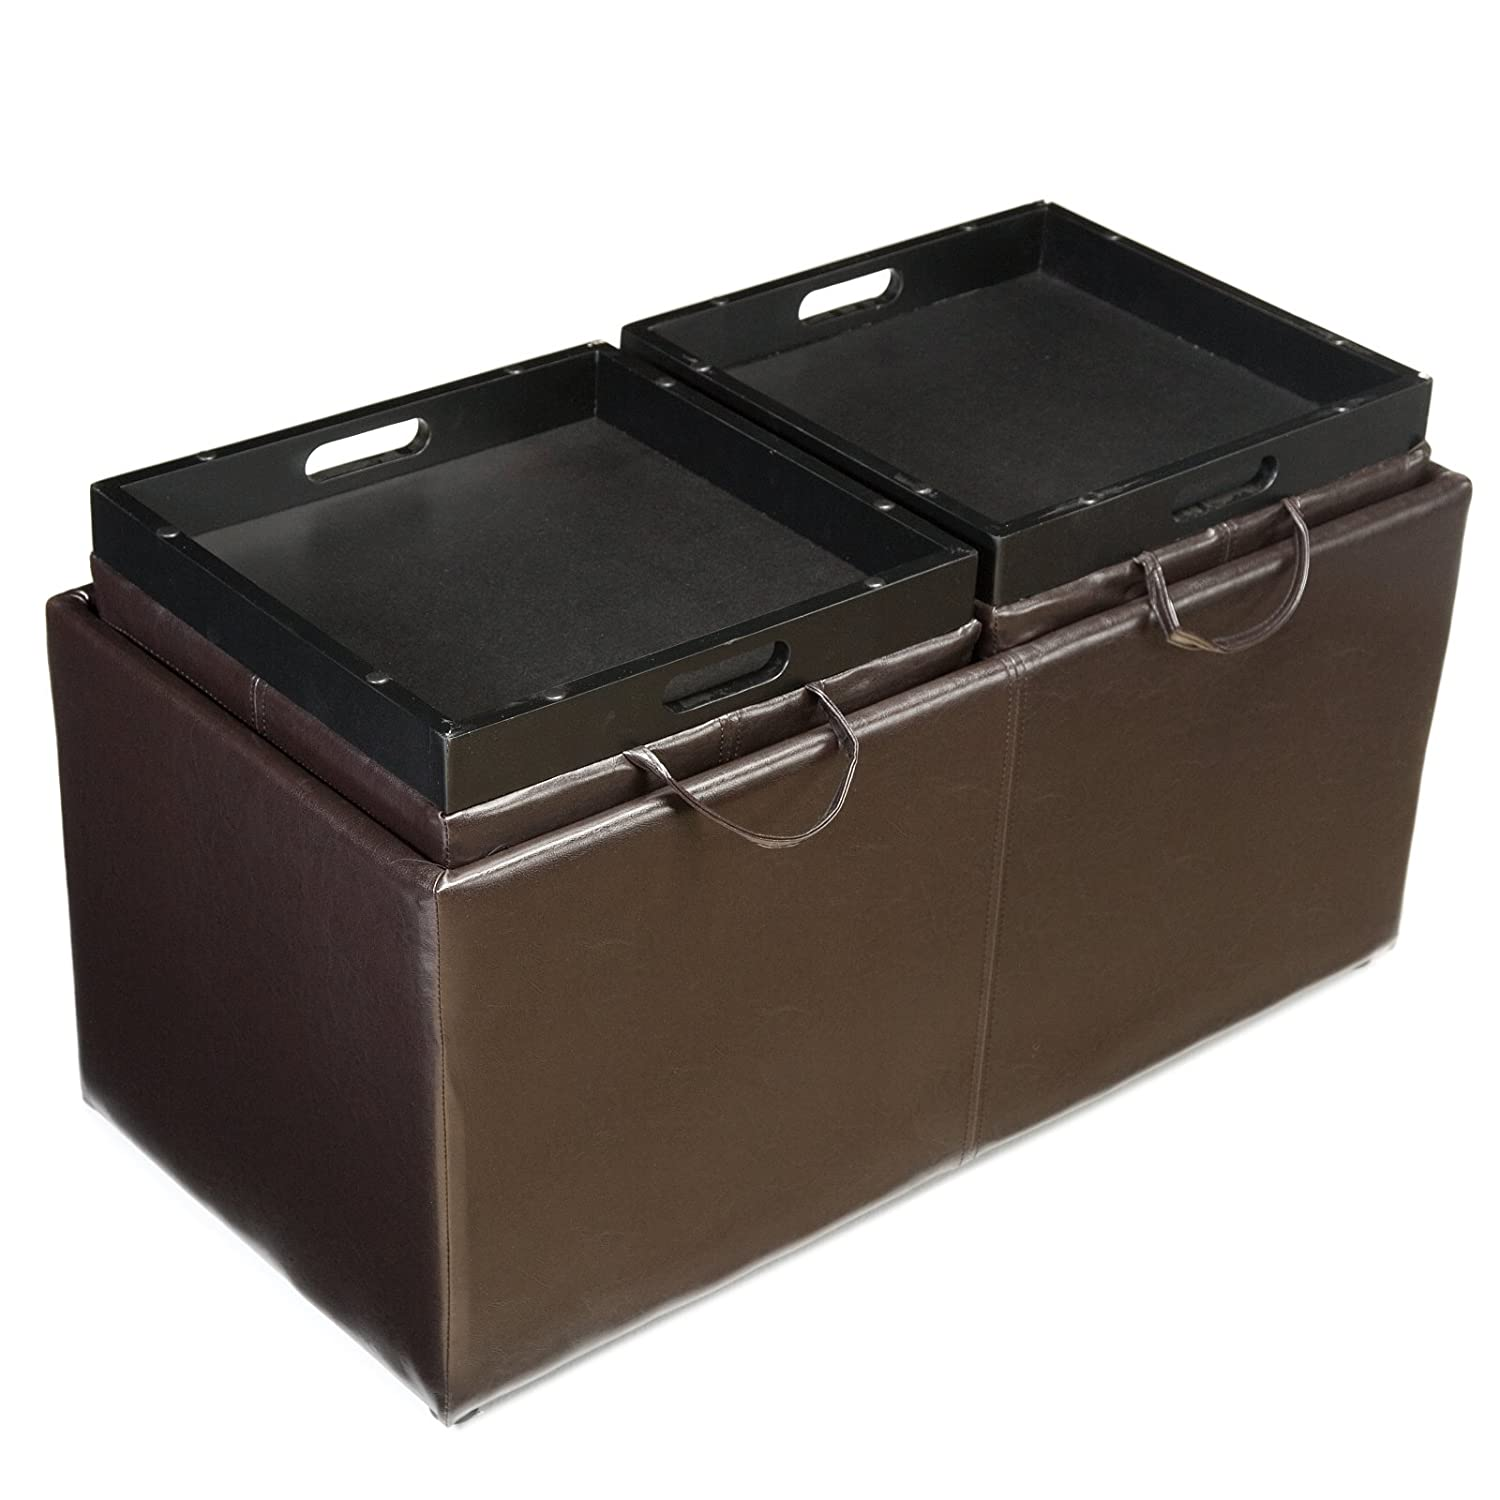 Beautiful Amazon.com : Jameson Double Storage Ottoman With Tray Tables : Storage  Ottoman Coffee Table : Patio, Lawn U0026 Garden